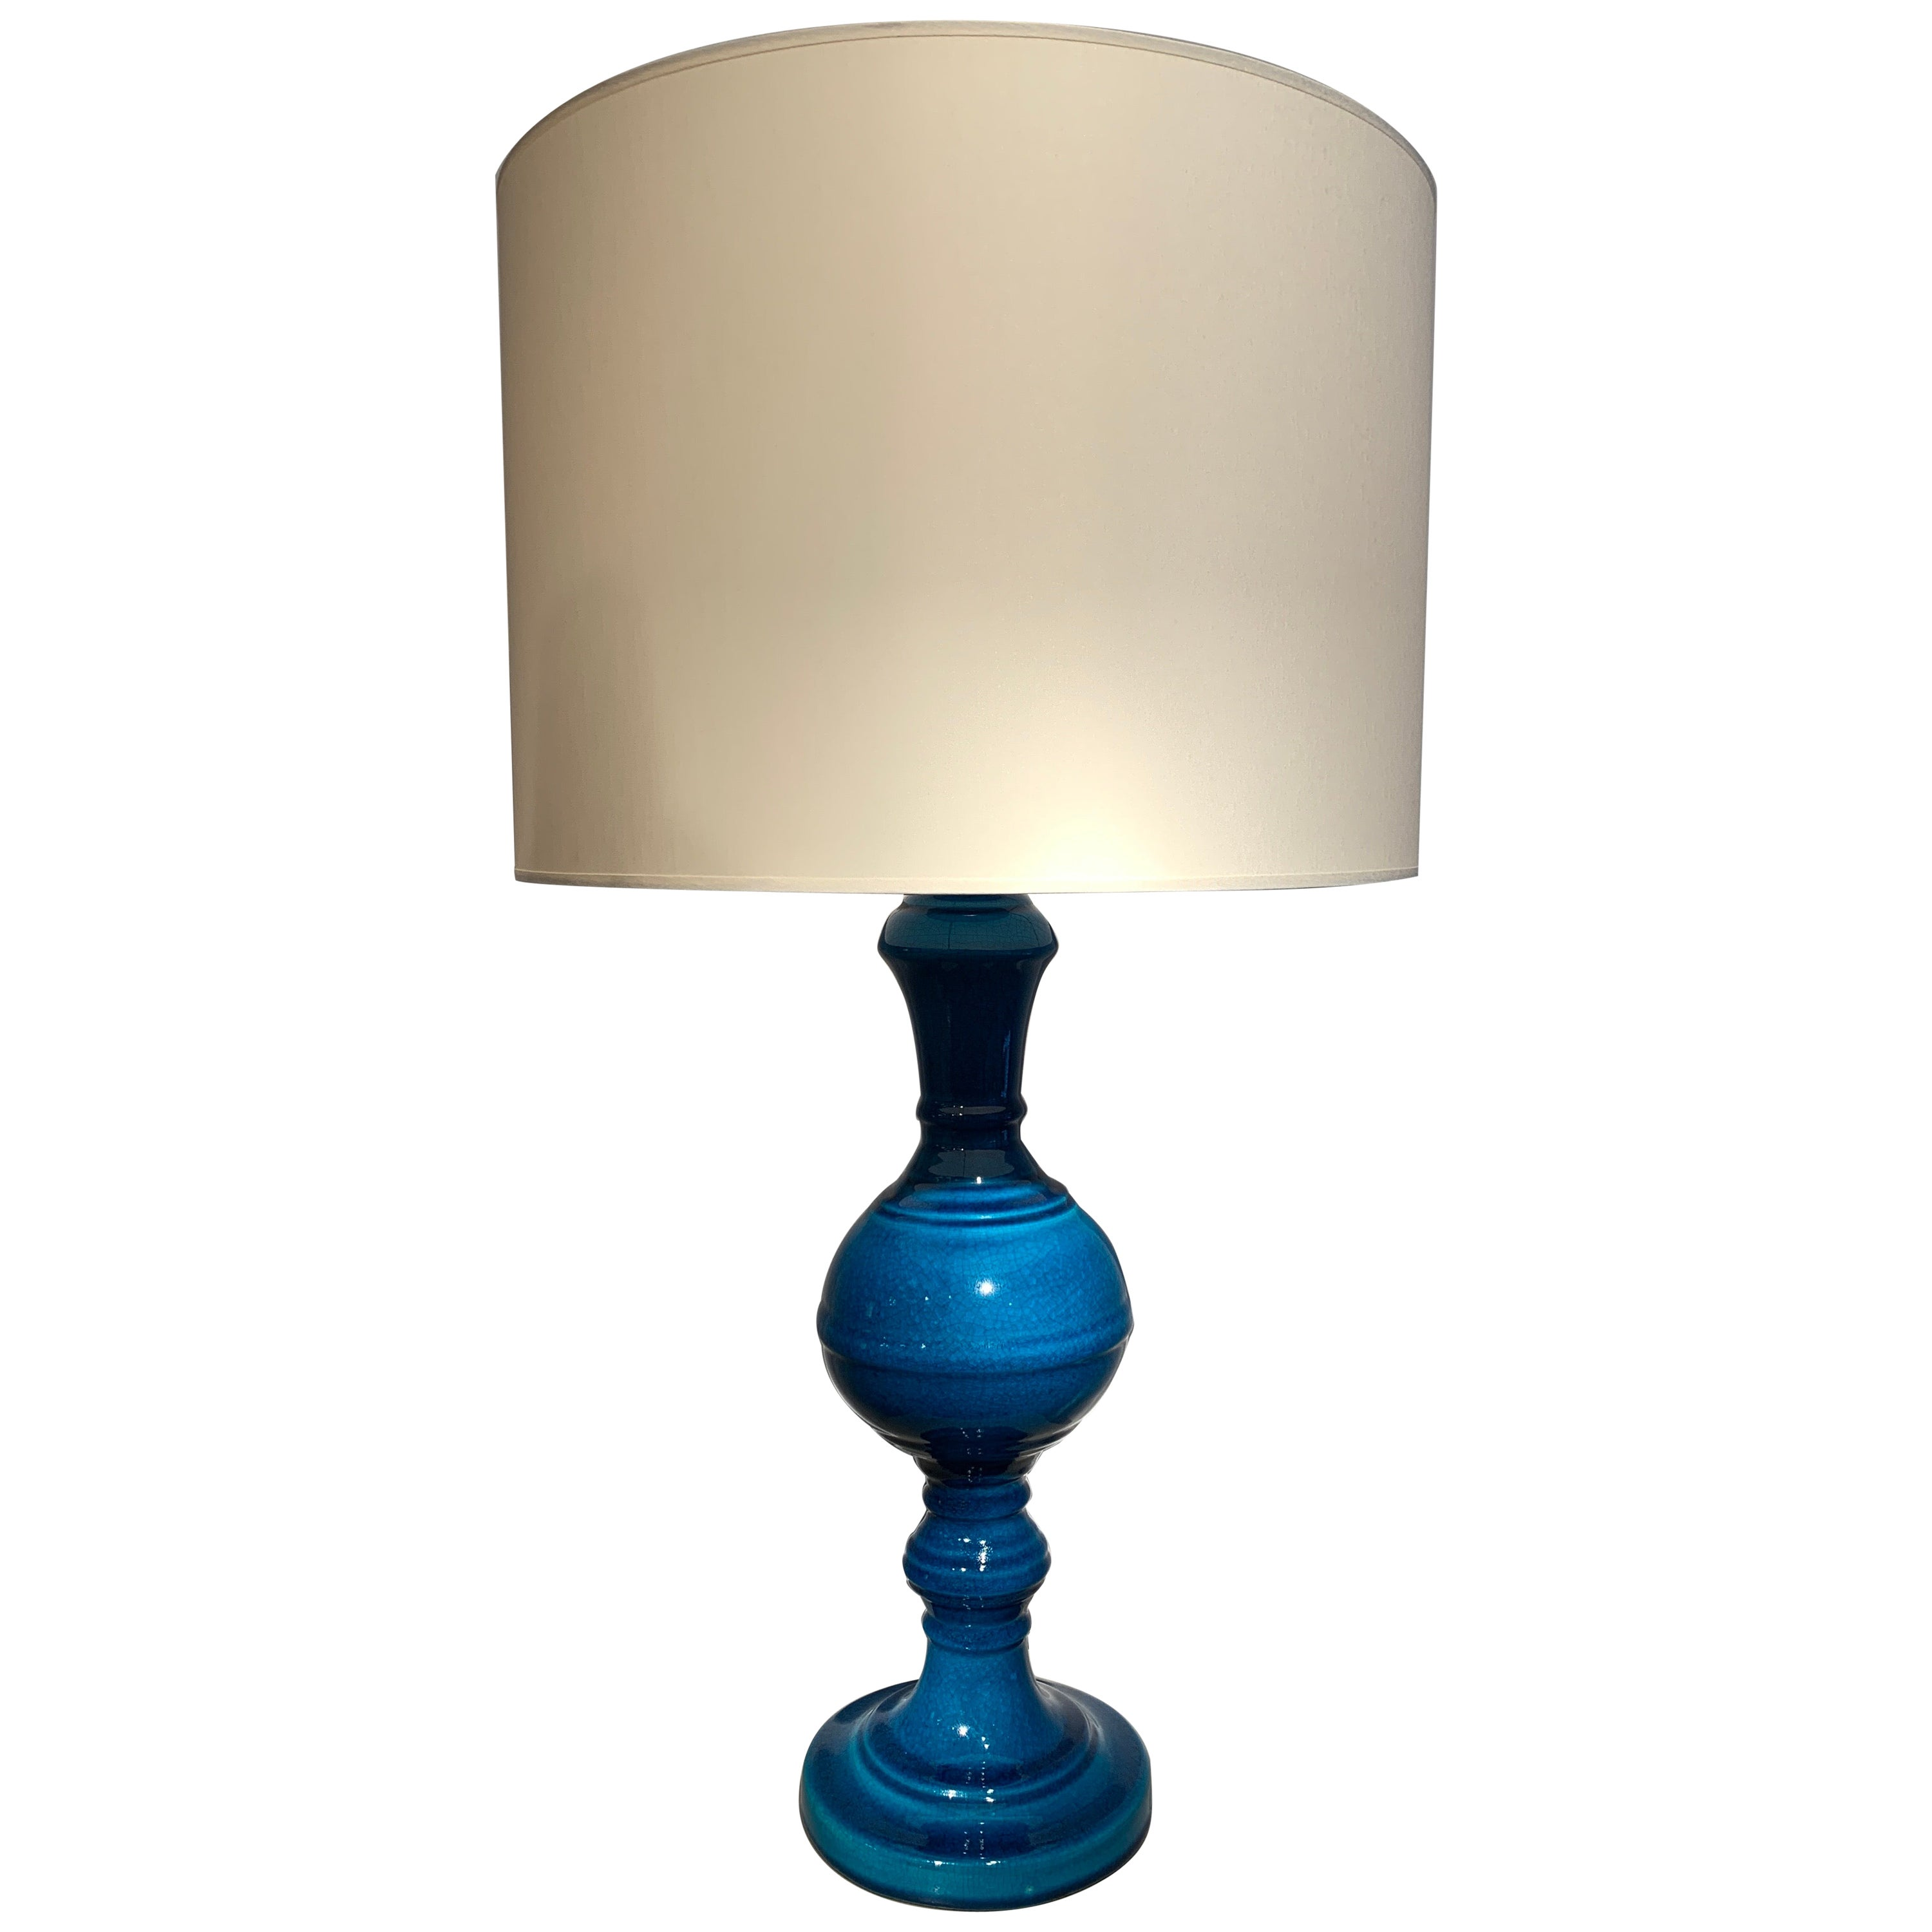 Pol Chambost Table Lamp, 1960s